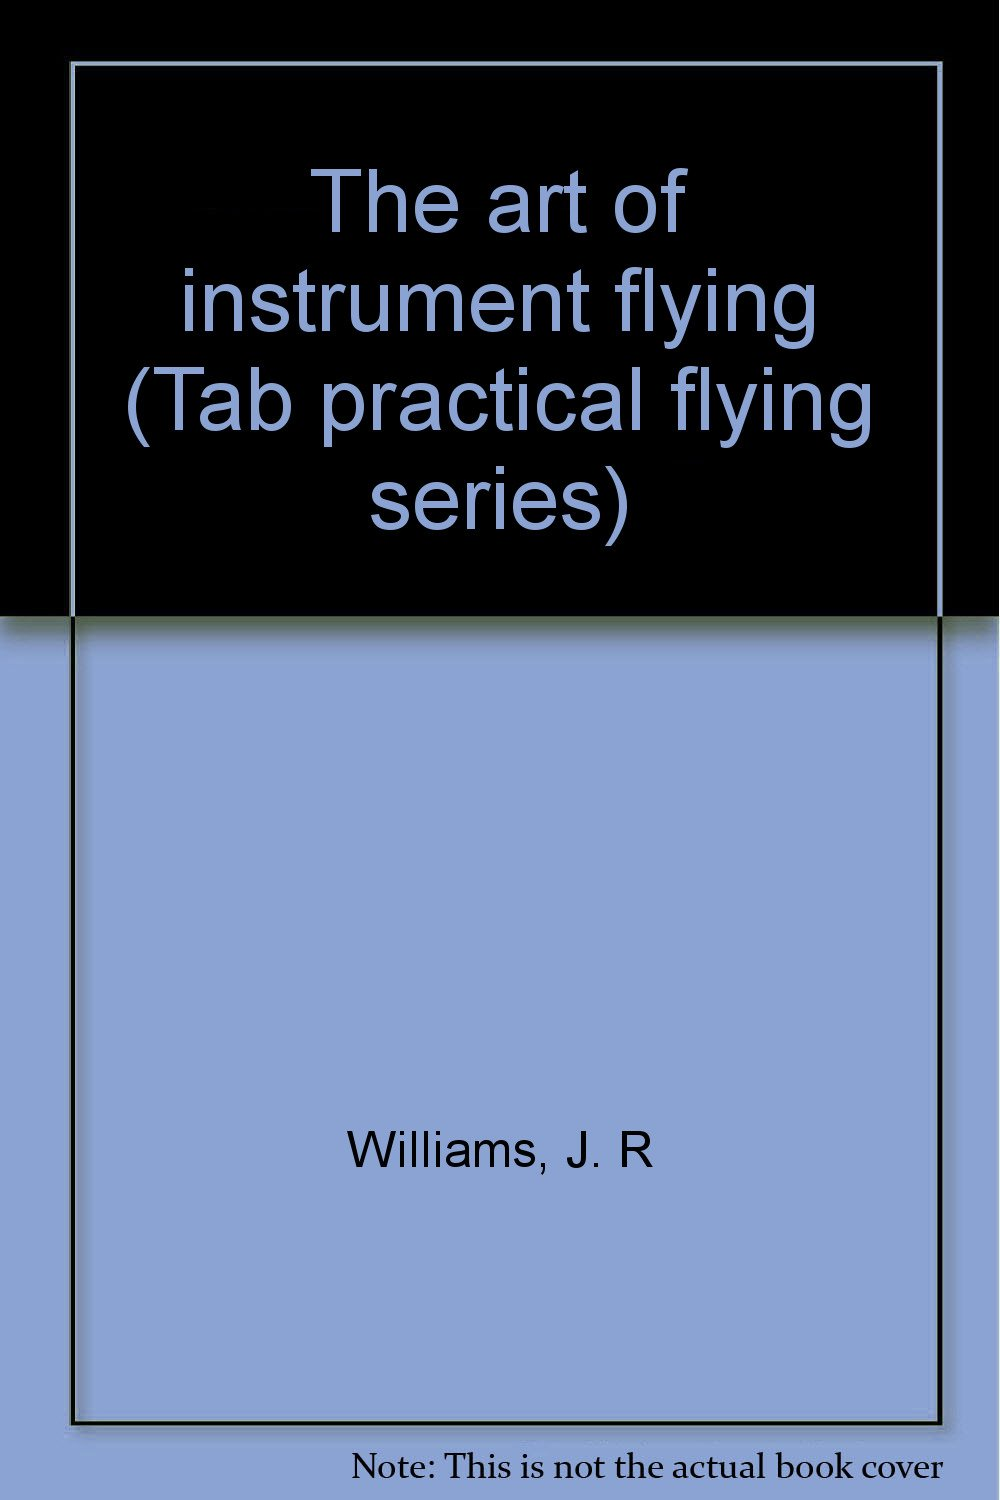 The art of instrument flying (Tab practical flying series)